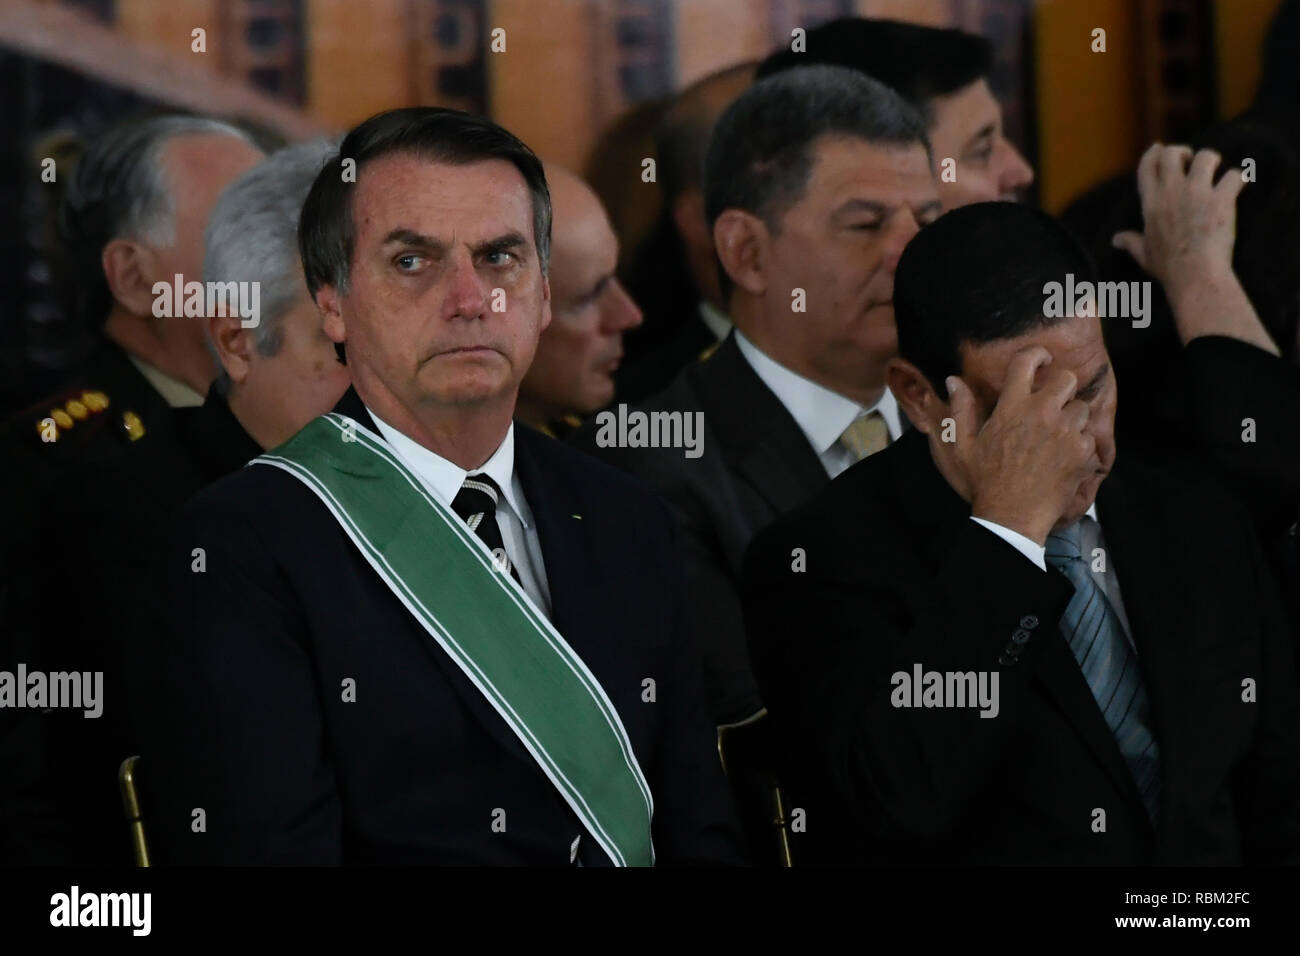 DF - Brasilia - 10/01/2019 - Possession of the Army General Commander - Jair Bolsonaro, President of the Republic, accompanied by General Hamilton Mourao, Vice President of the Republic, on Friday, January 11, during a solemnity of Army of the General Eduardo Dias da Costa Army Villas Boas to Army General Edson Leal Pujol in a ceremony held in the Club of the Army. Photo: Mateus Bonomi / AGIF - Stock Image